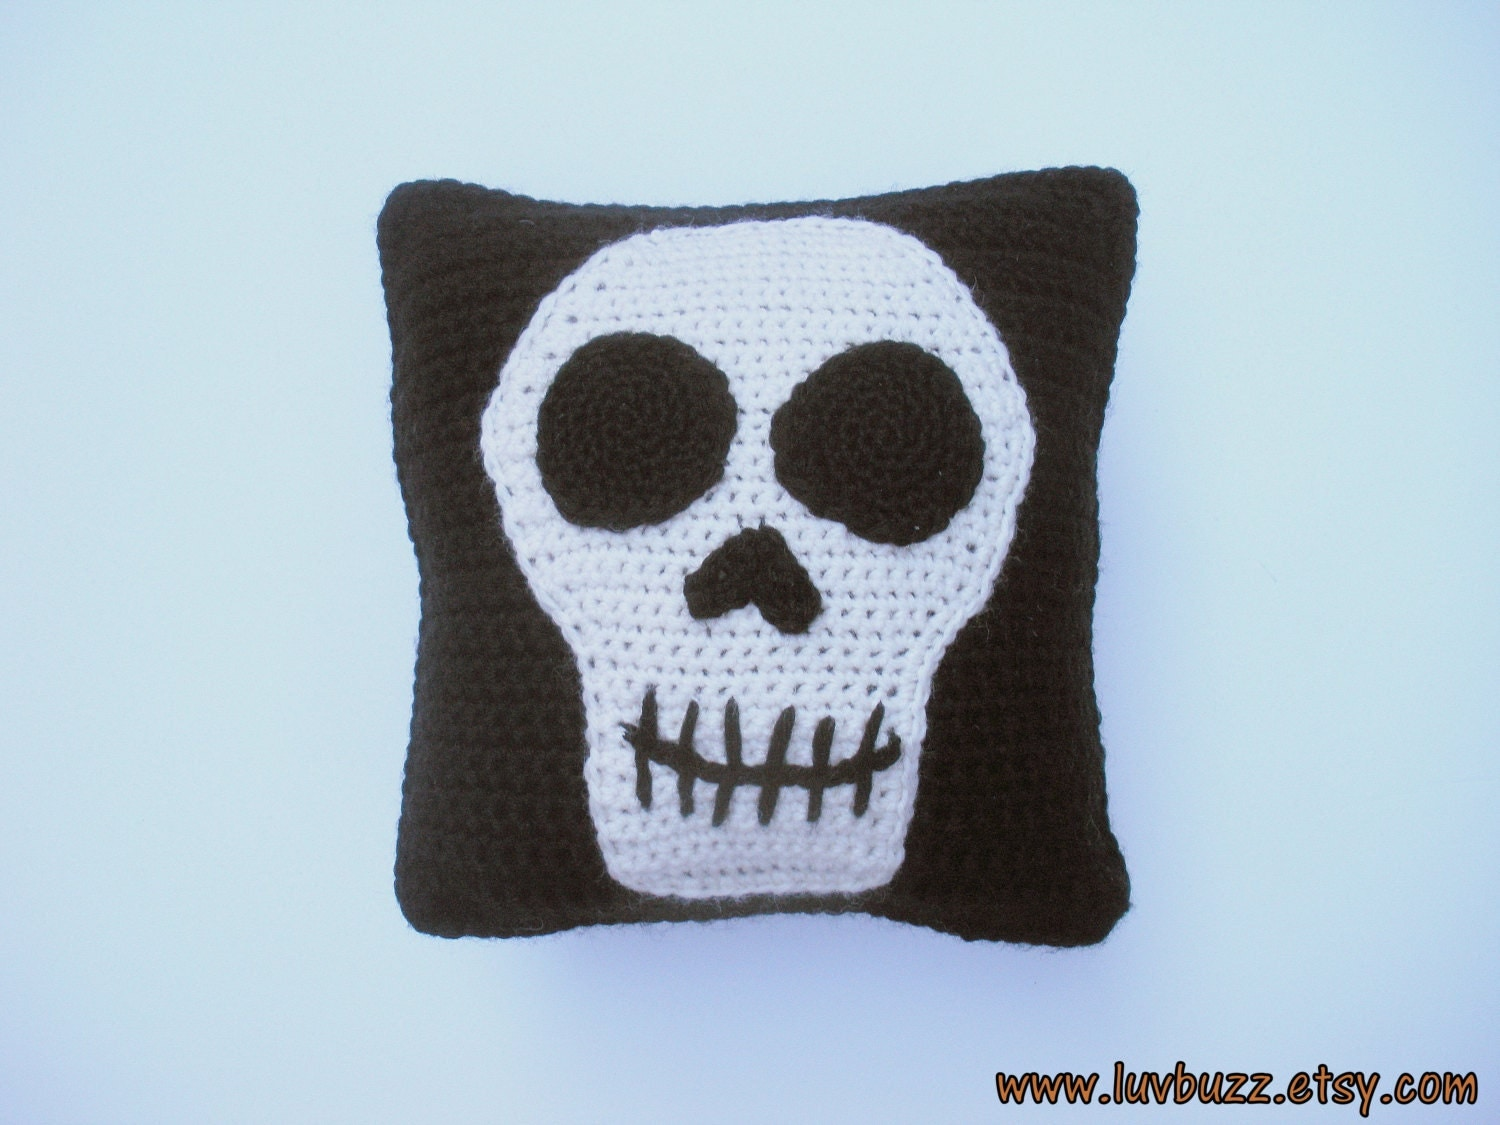 Small Black Skull Pillow decorative crochet throw pillow with